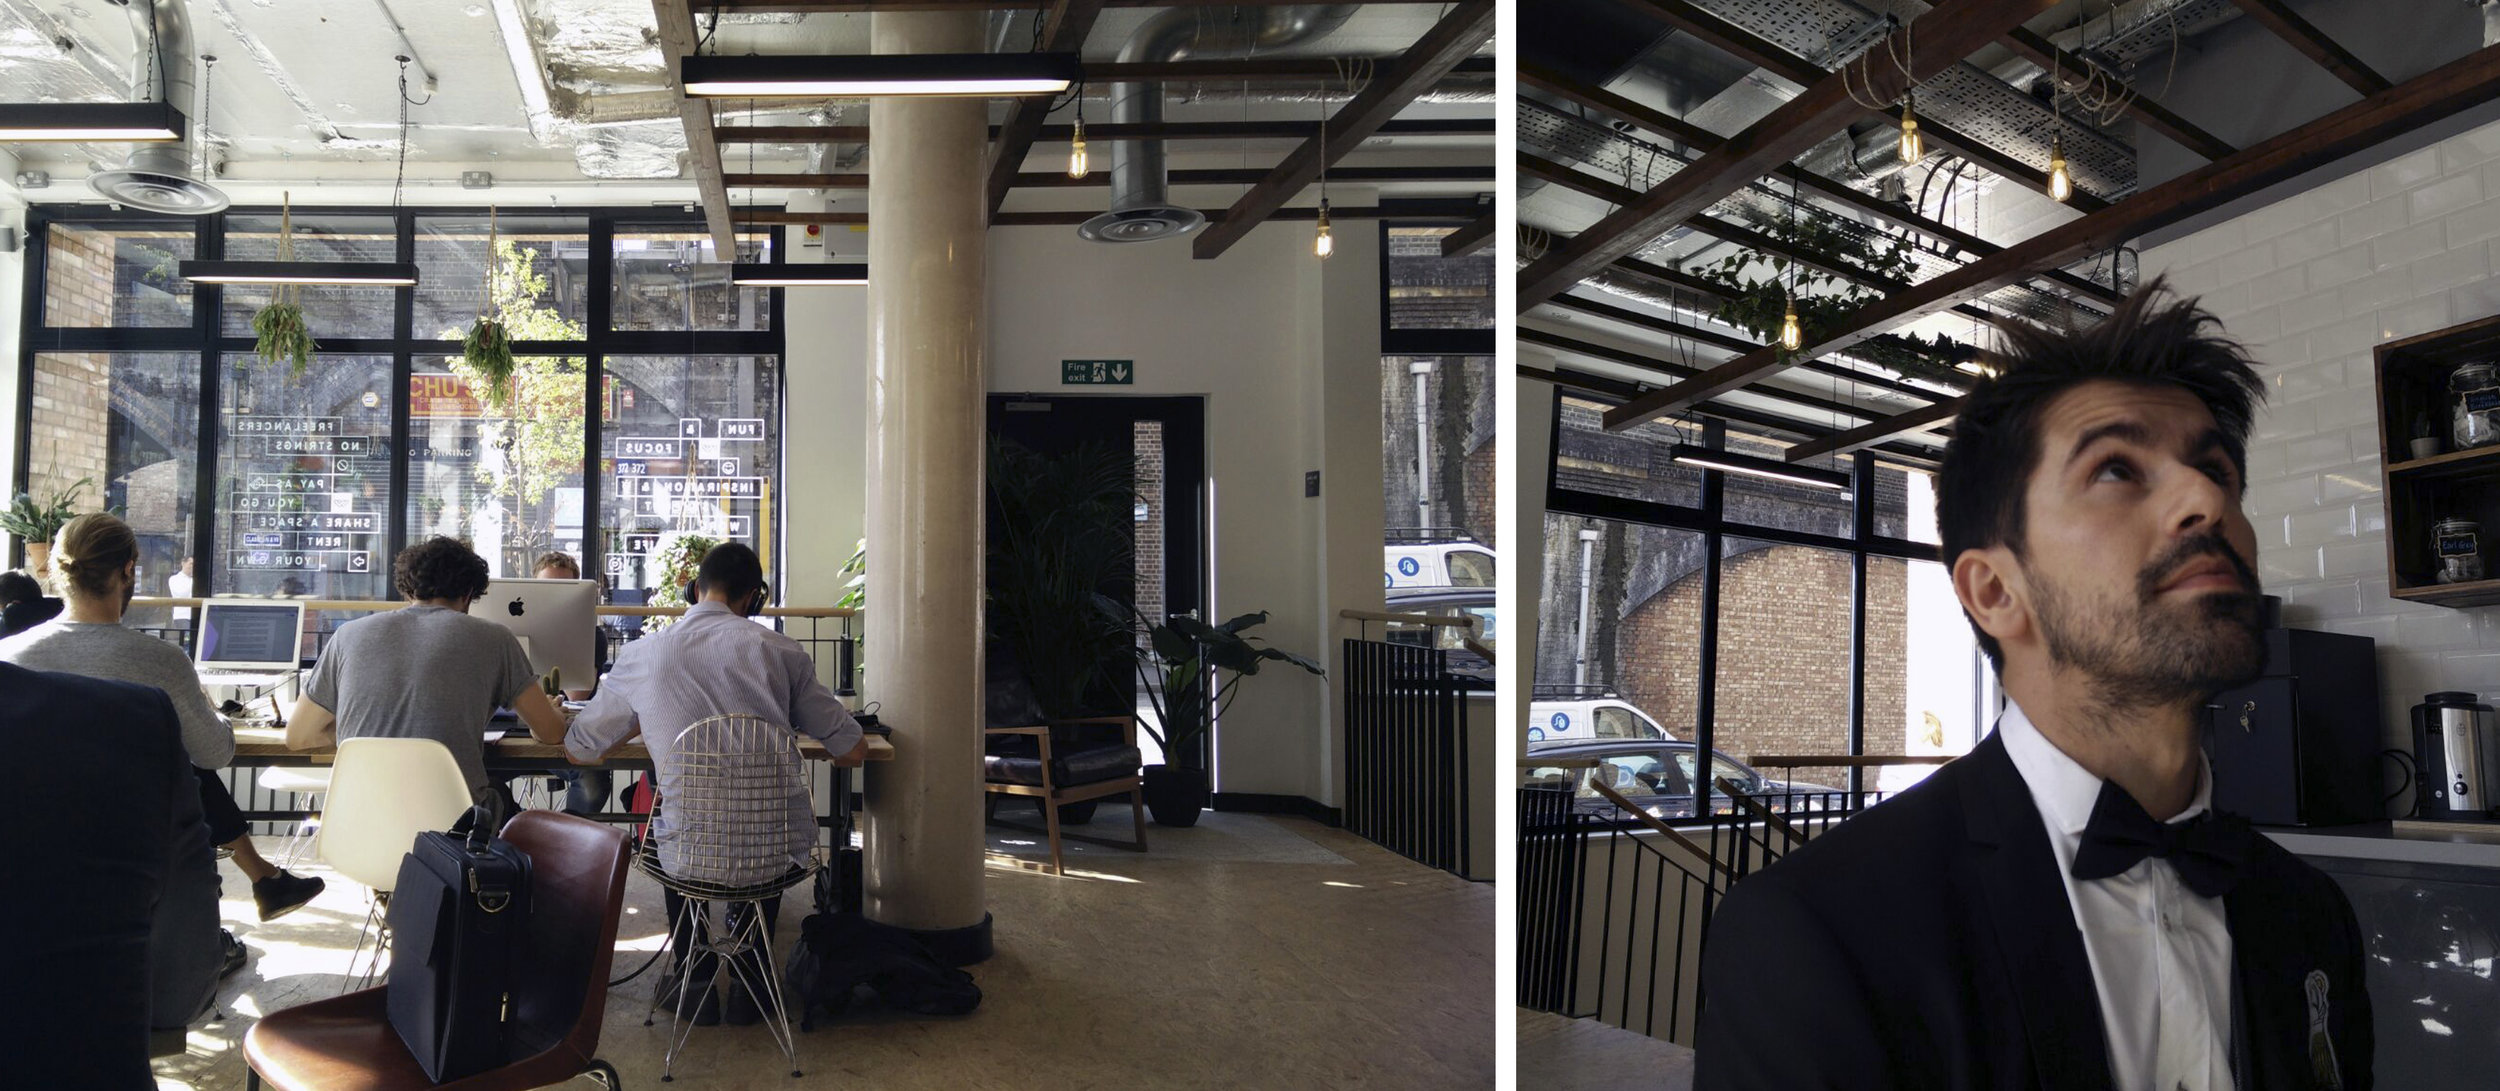 At the Coworking space of Mucho